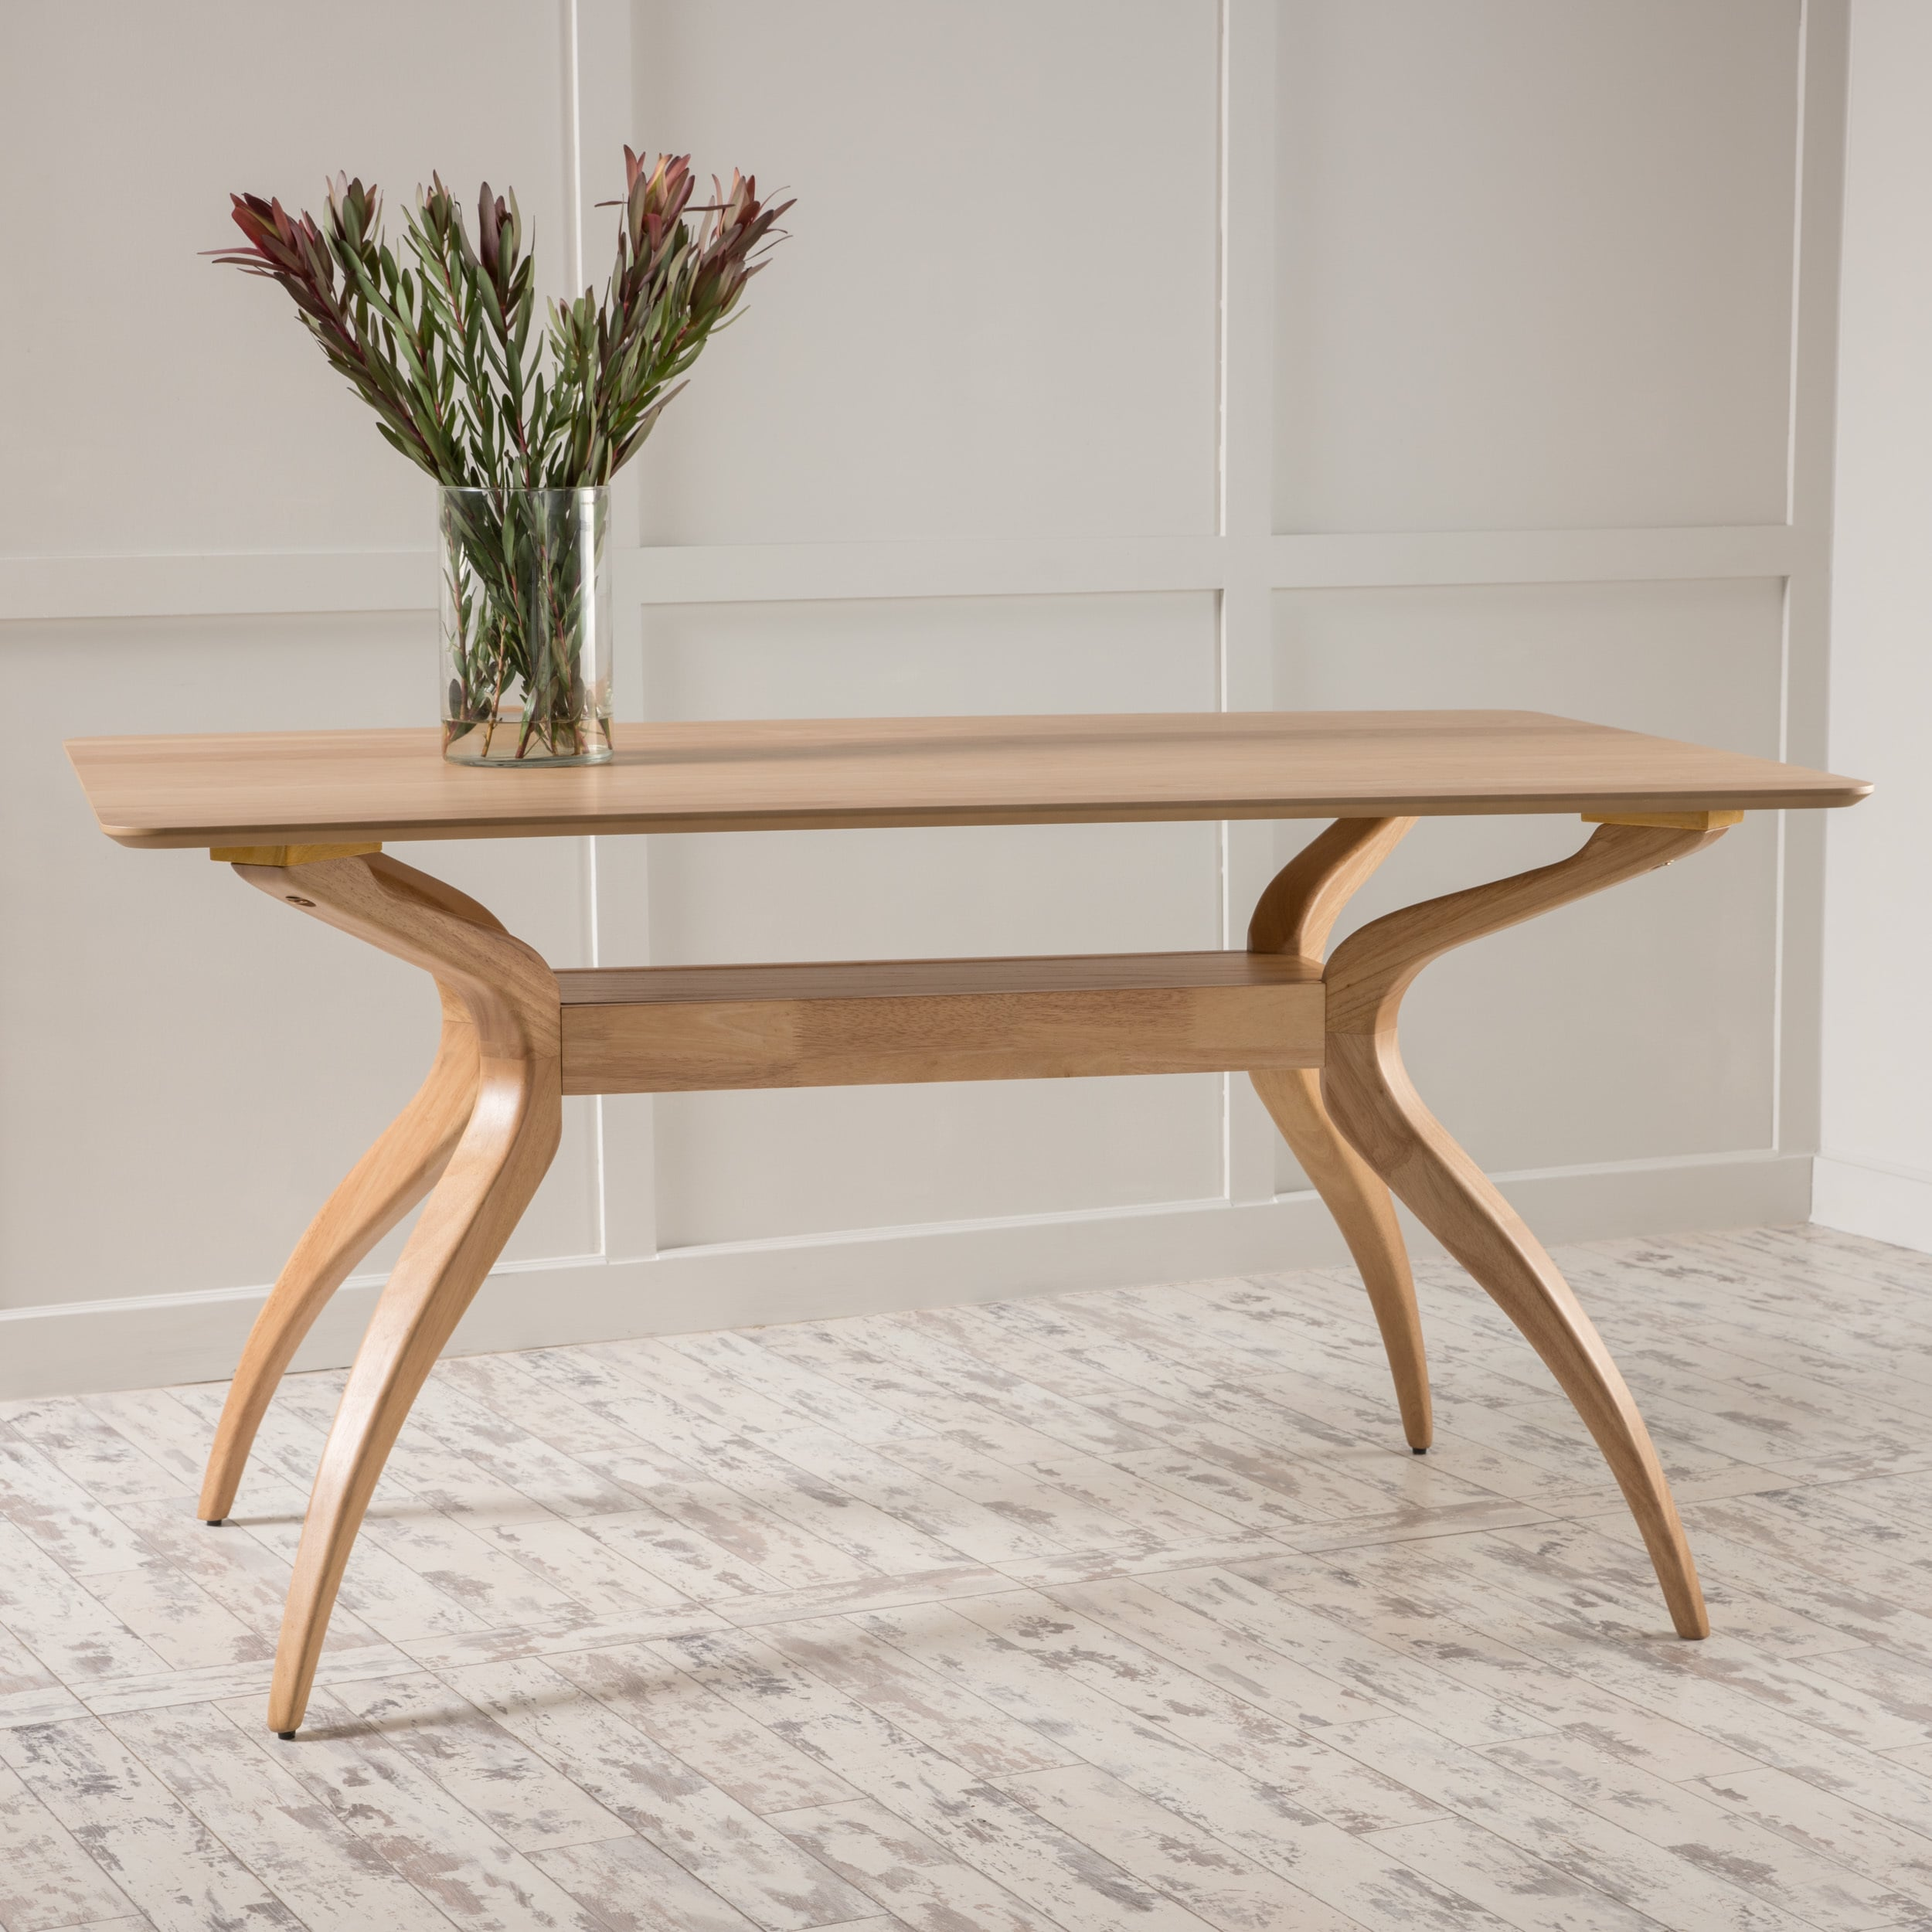 Salli Chair Salli Natural Finish Wood Dining Table By Christopher Knight Home